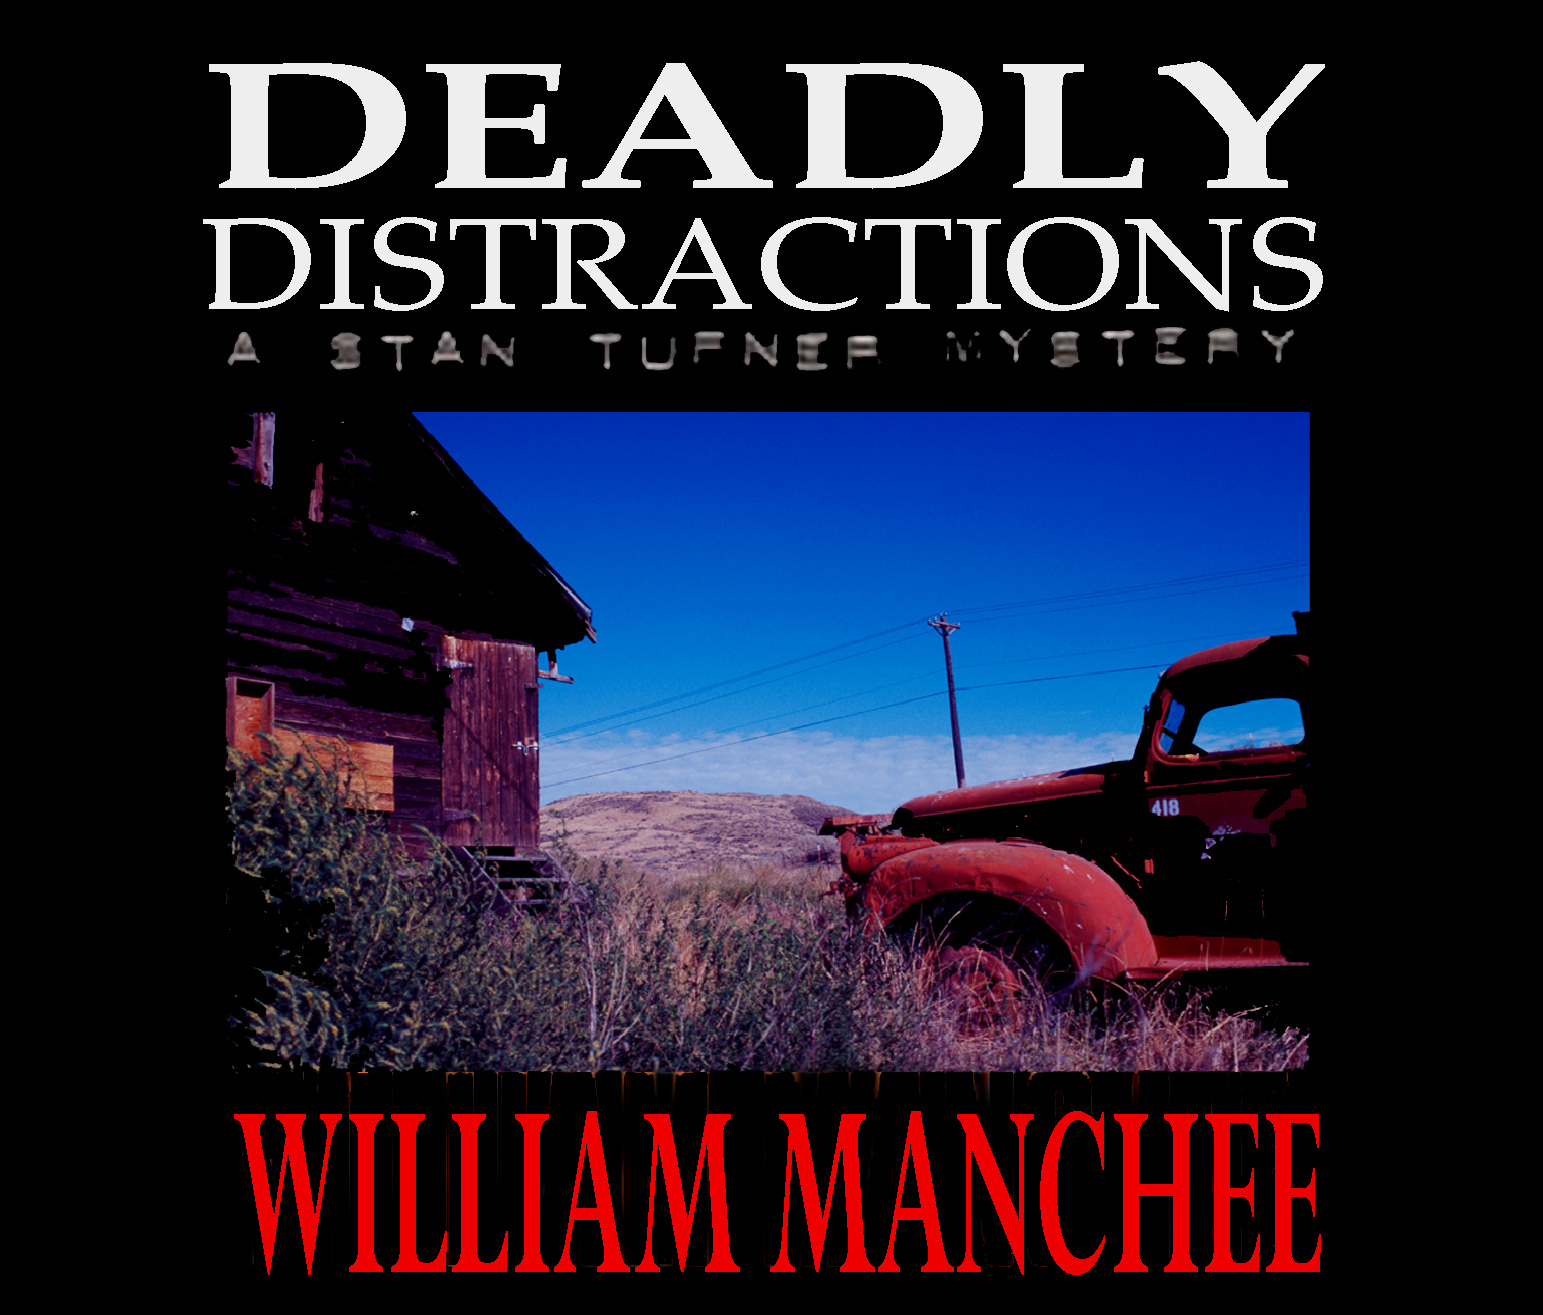 Deadly Distractions, A Stan Turner Mystery